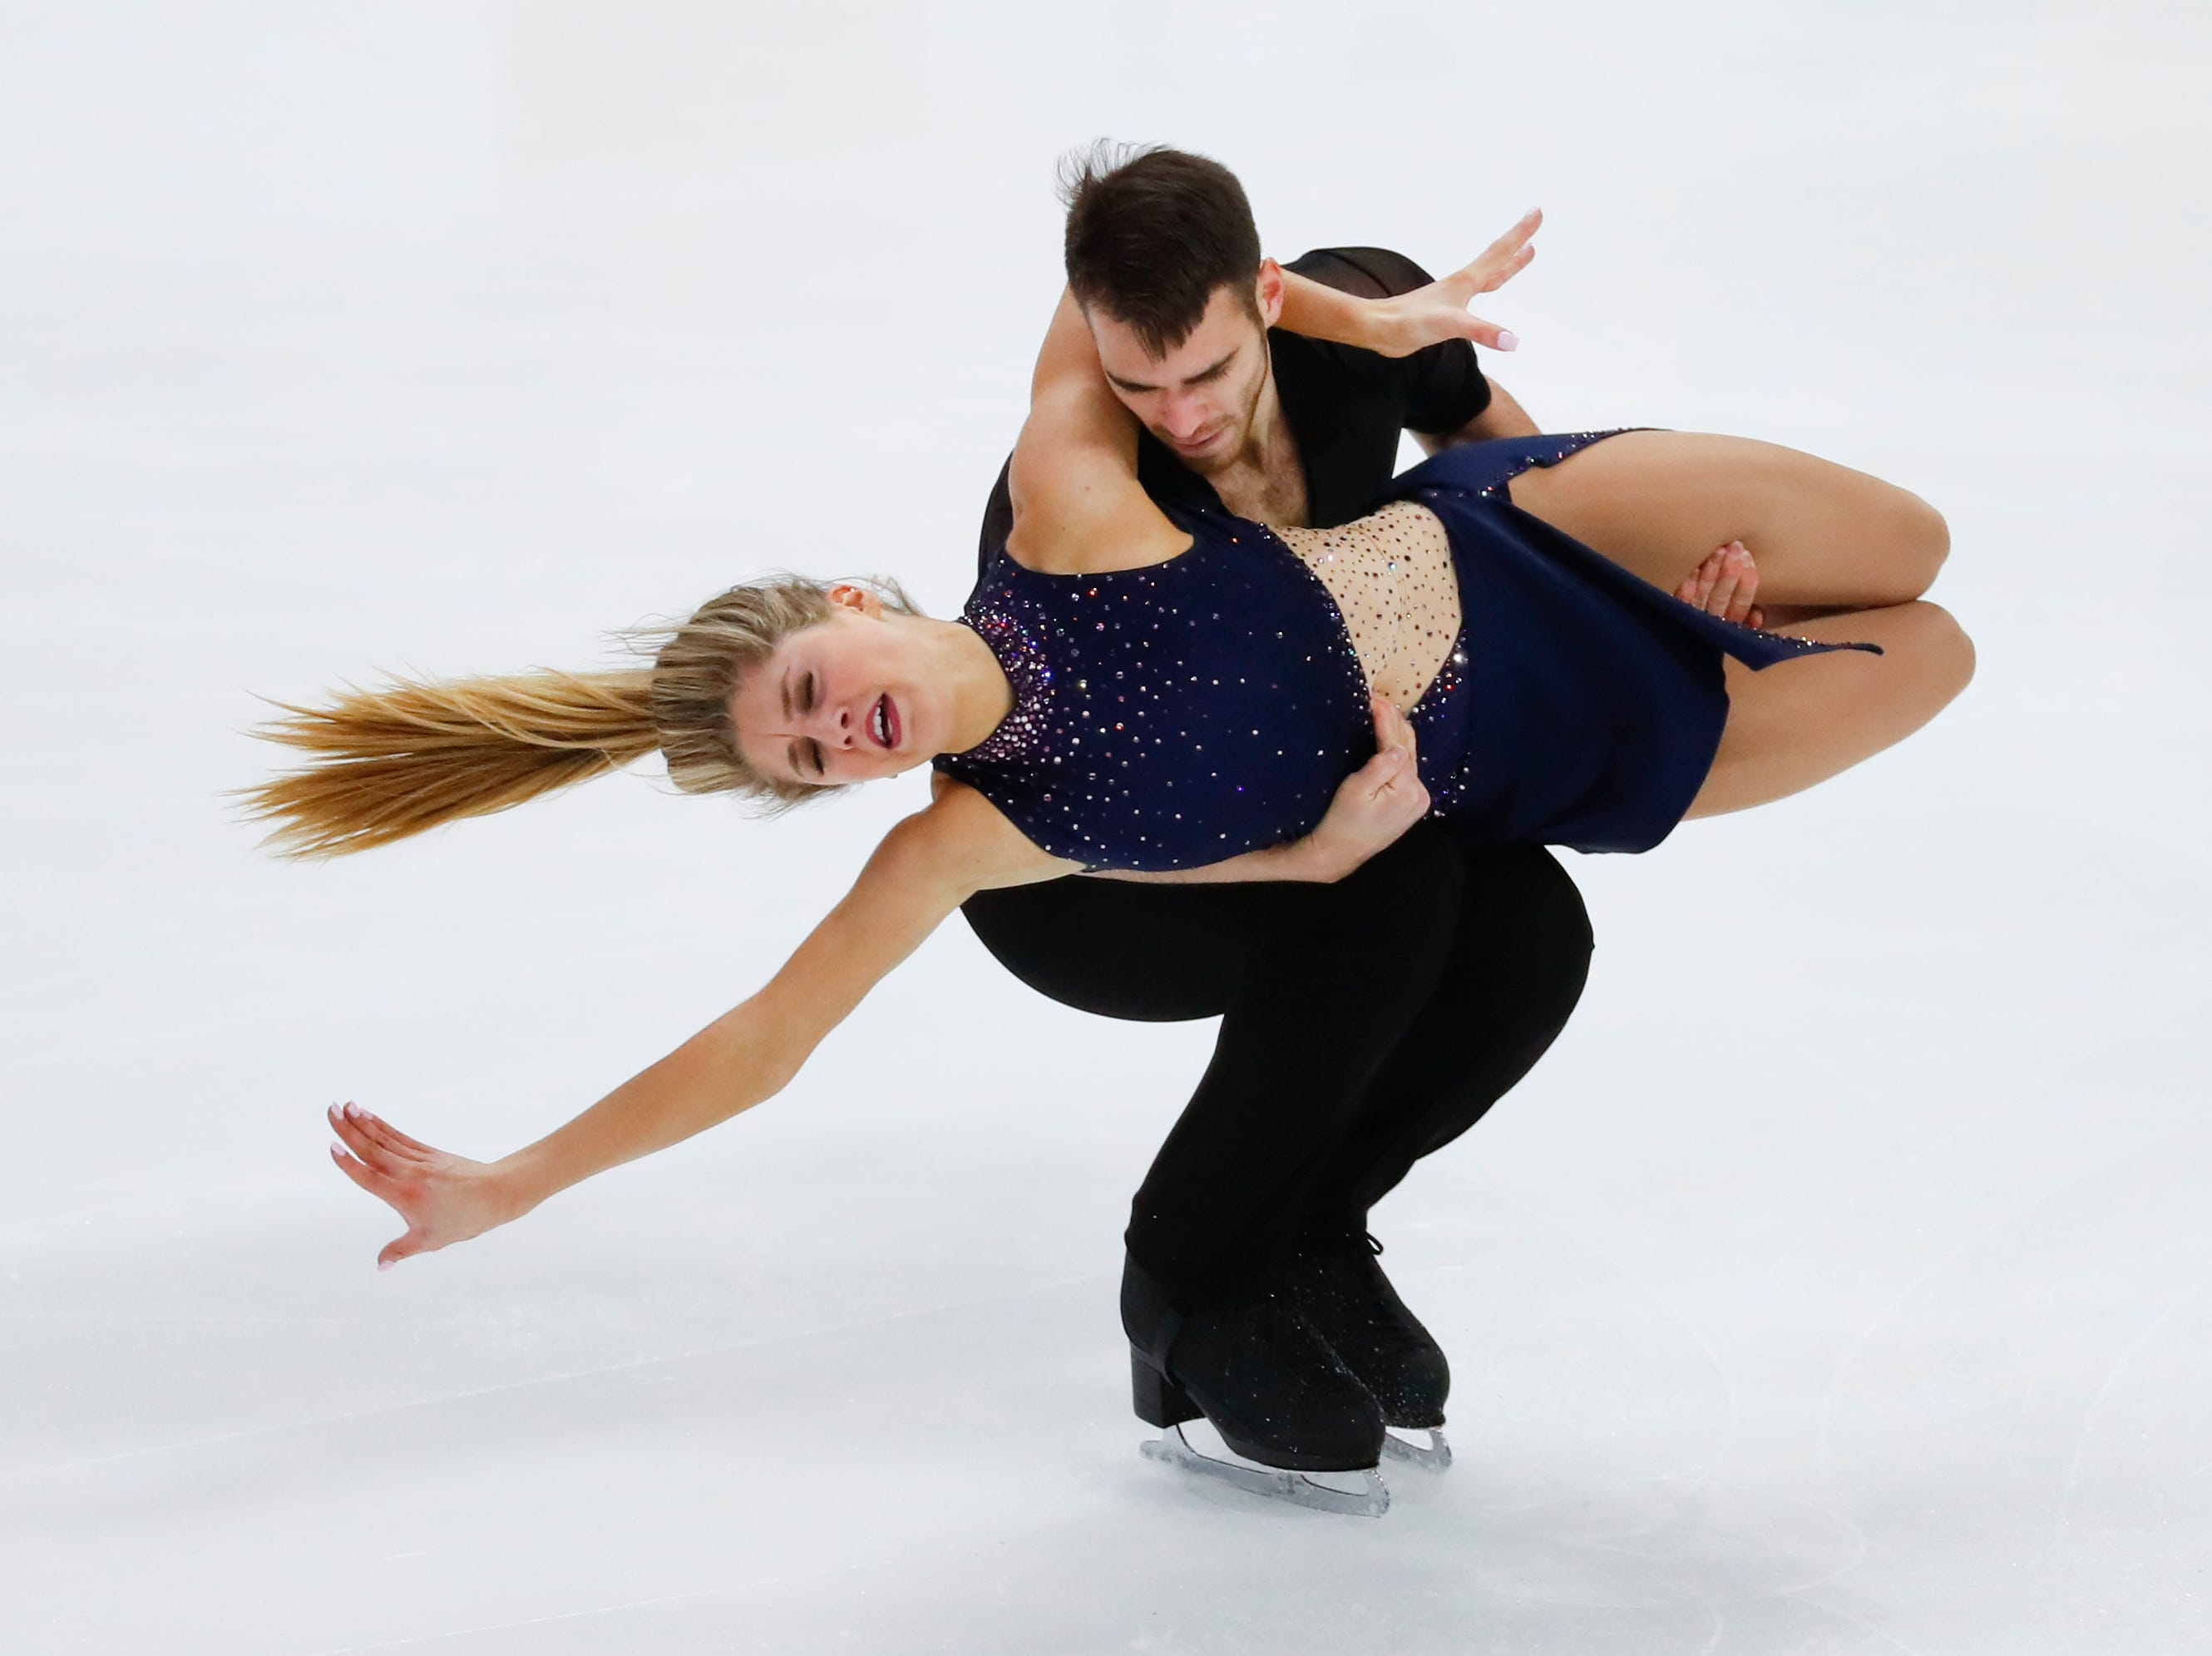 Lydia Erdman and Yuri Vlasenko perform their rhythm dance program at the U.S. Figure Skating Championships.